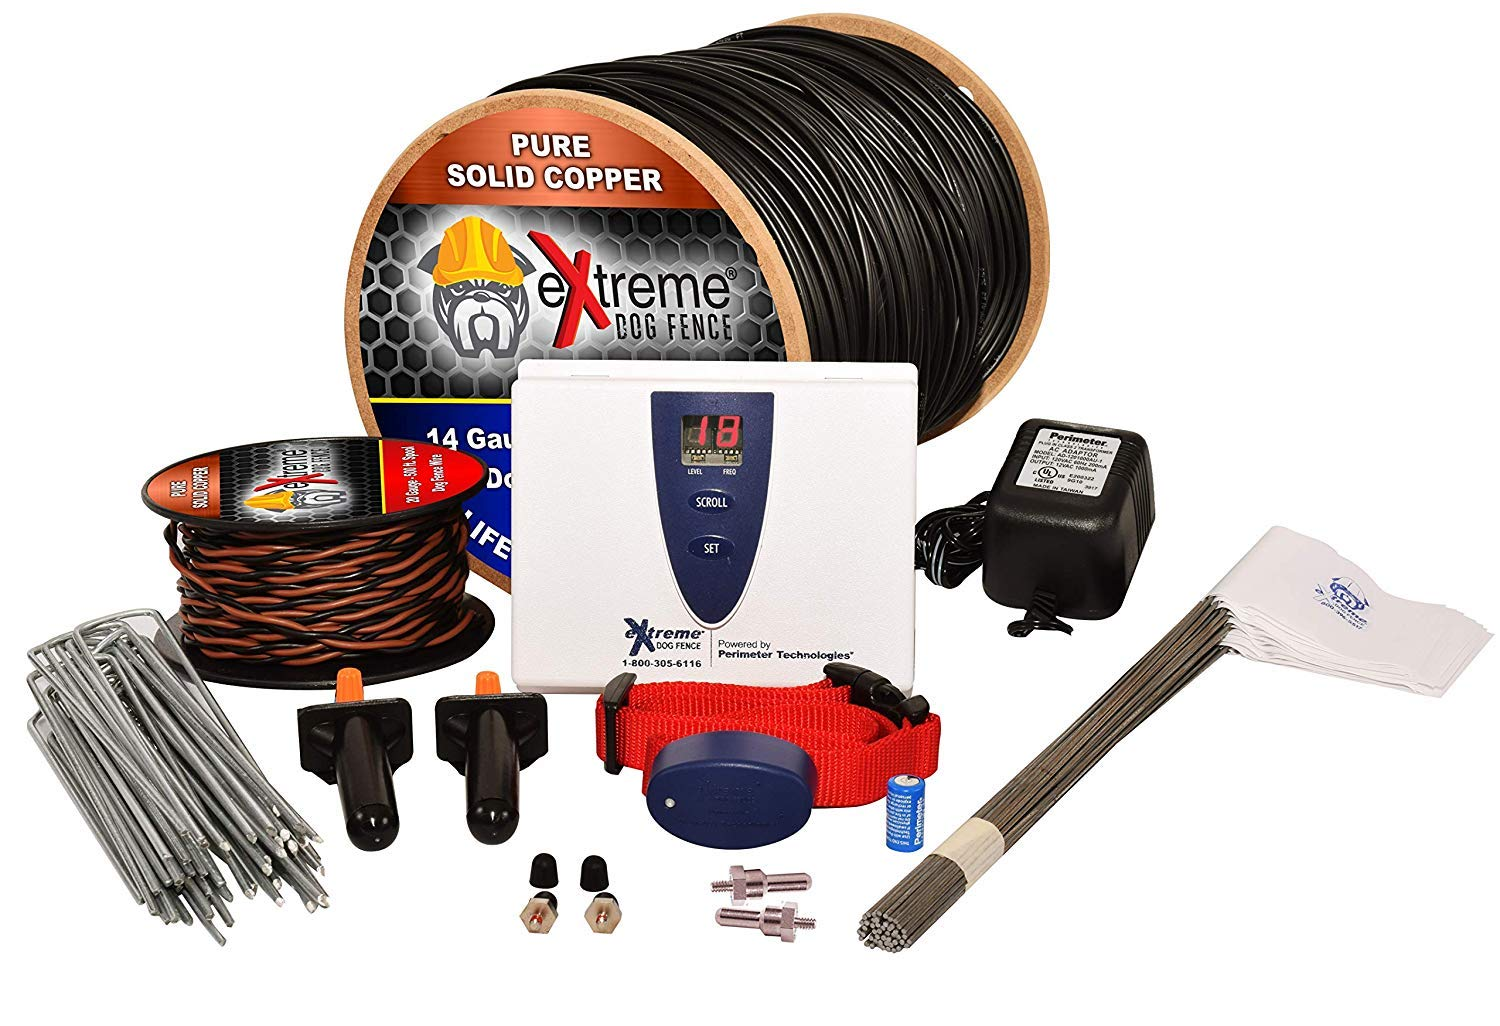 Underground Electric Dog Fence Ultimate - Extreme Pro Dog Fence System for Easy Setup and Maximum Longevity and Continued Reliable Pet Safety - 1 Dog | 1000 Feet Pro Grade Dog Fence Wire by Extreme Dog Fence (Image #1)